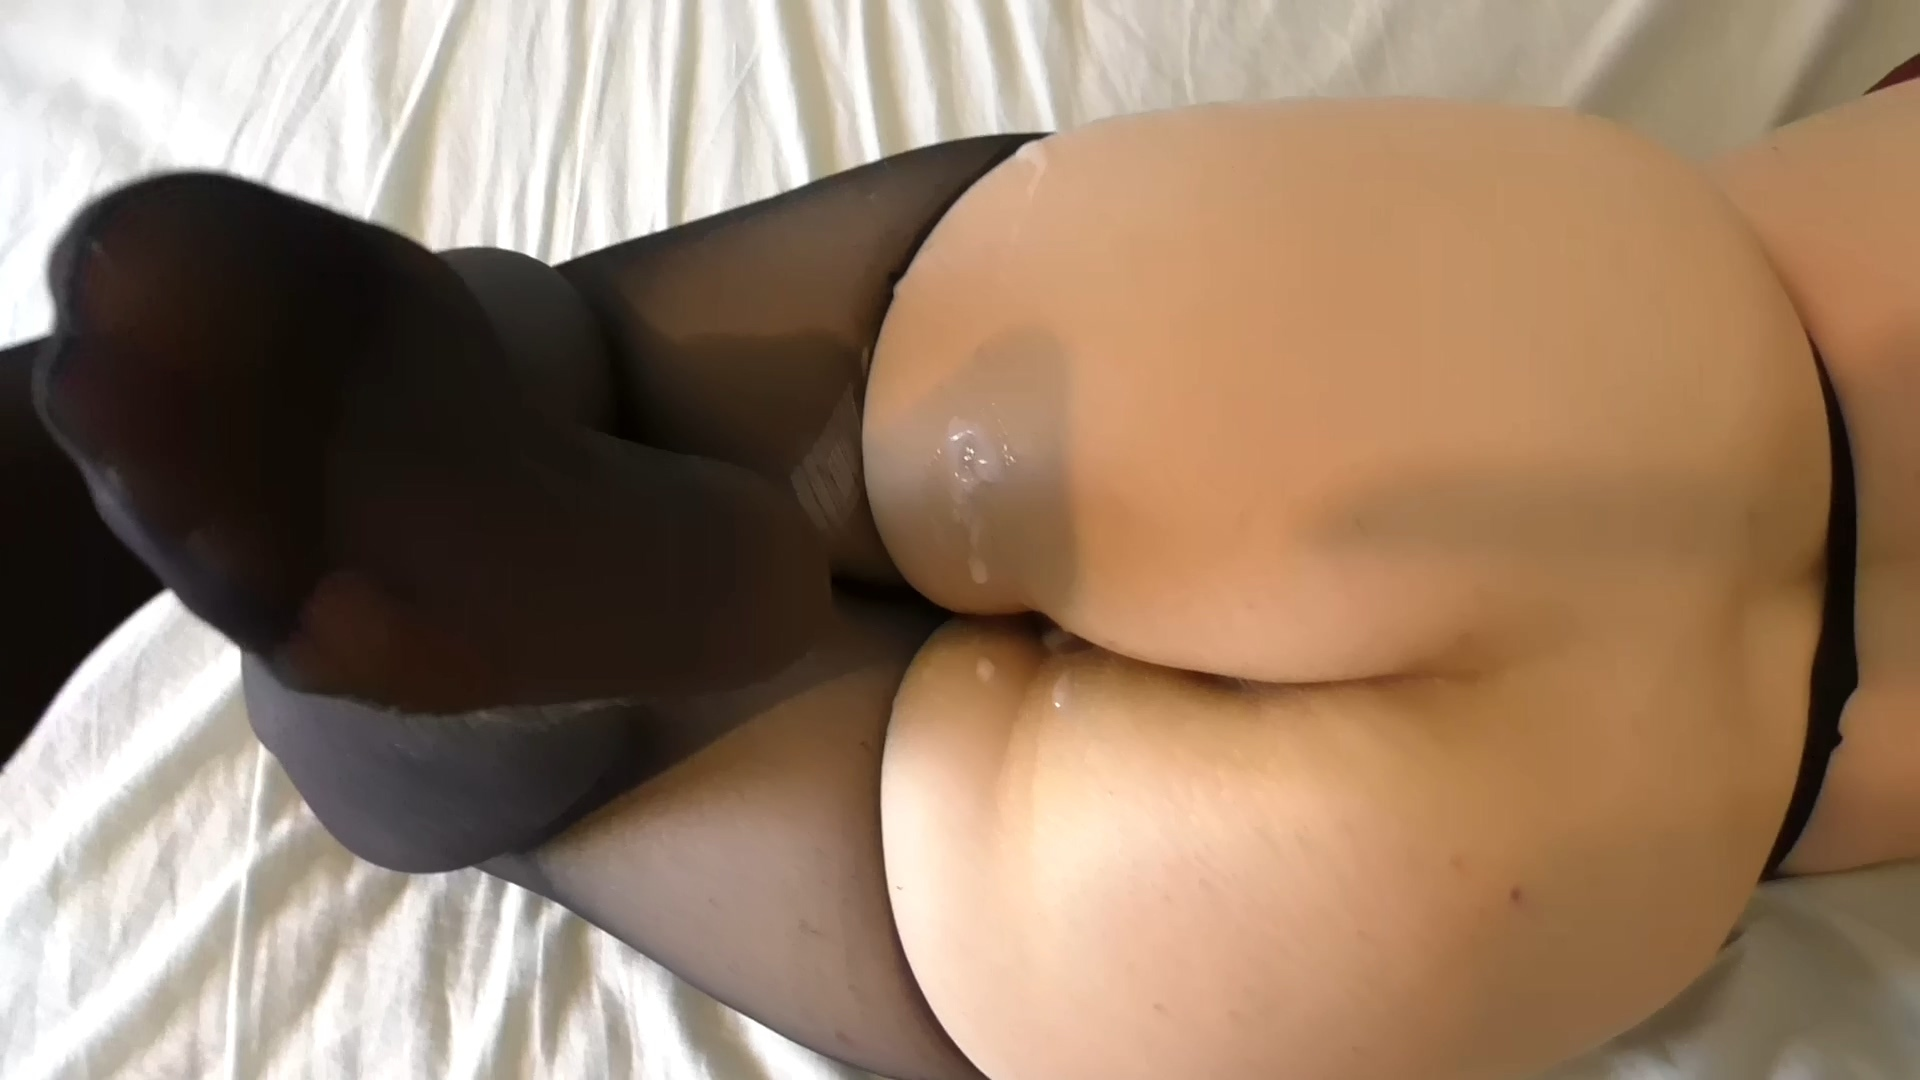 018_Amateur_in_Ripped_Pantyhose_1080p.mp4_20201214_194016.837.jpg